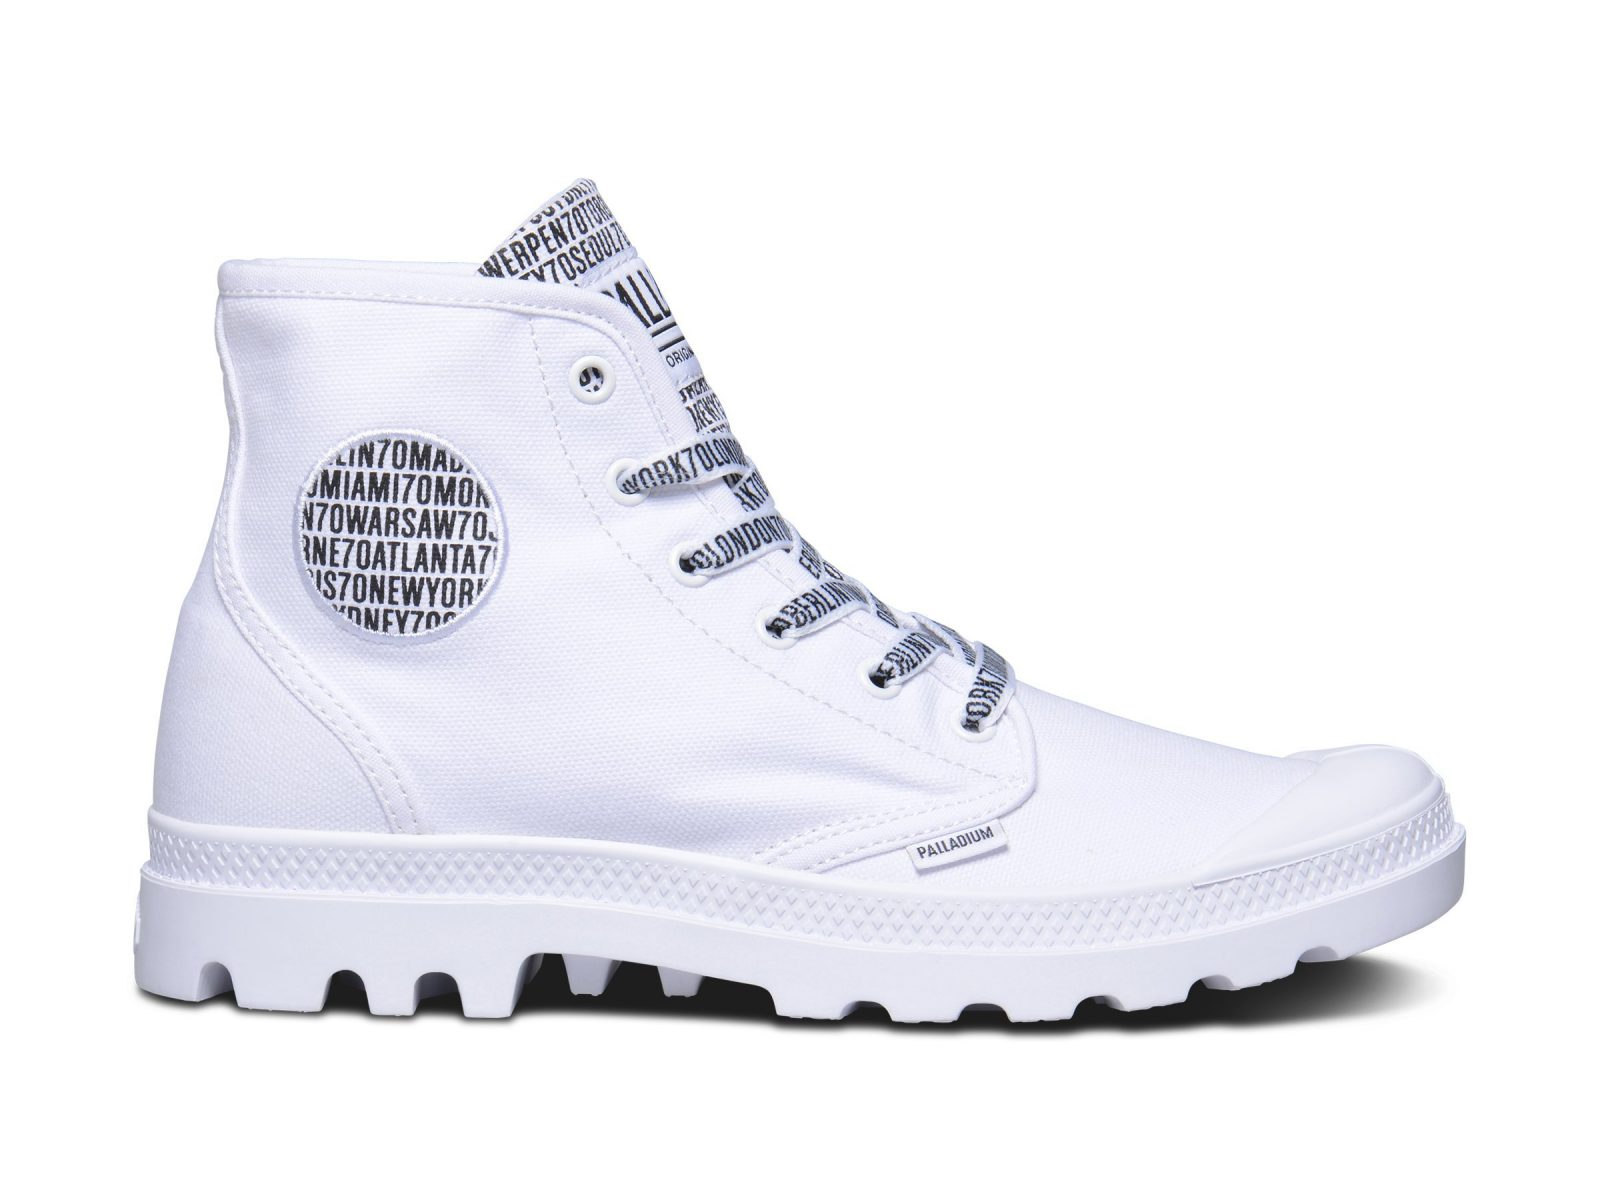 Palladium Boots to celebrate 70 with two new drops